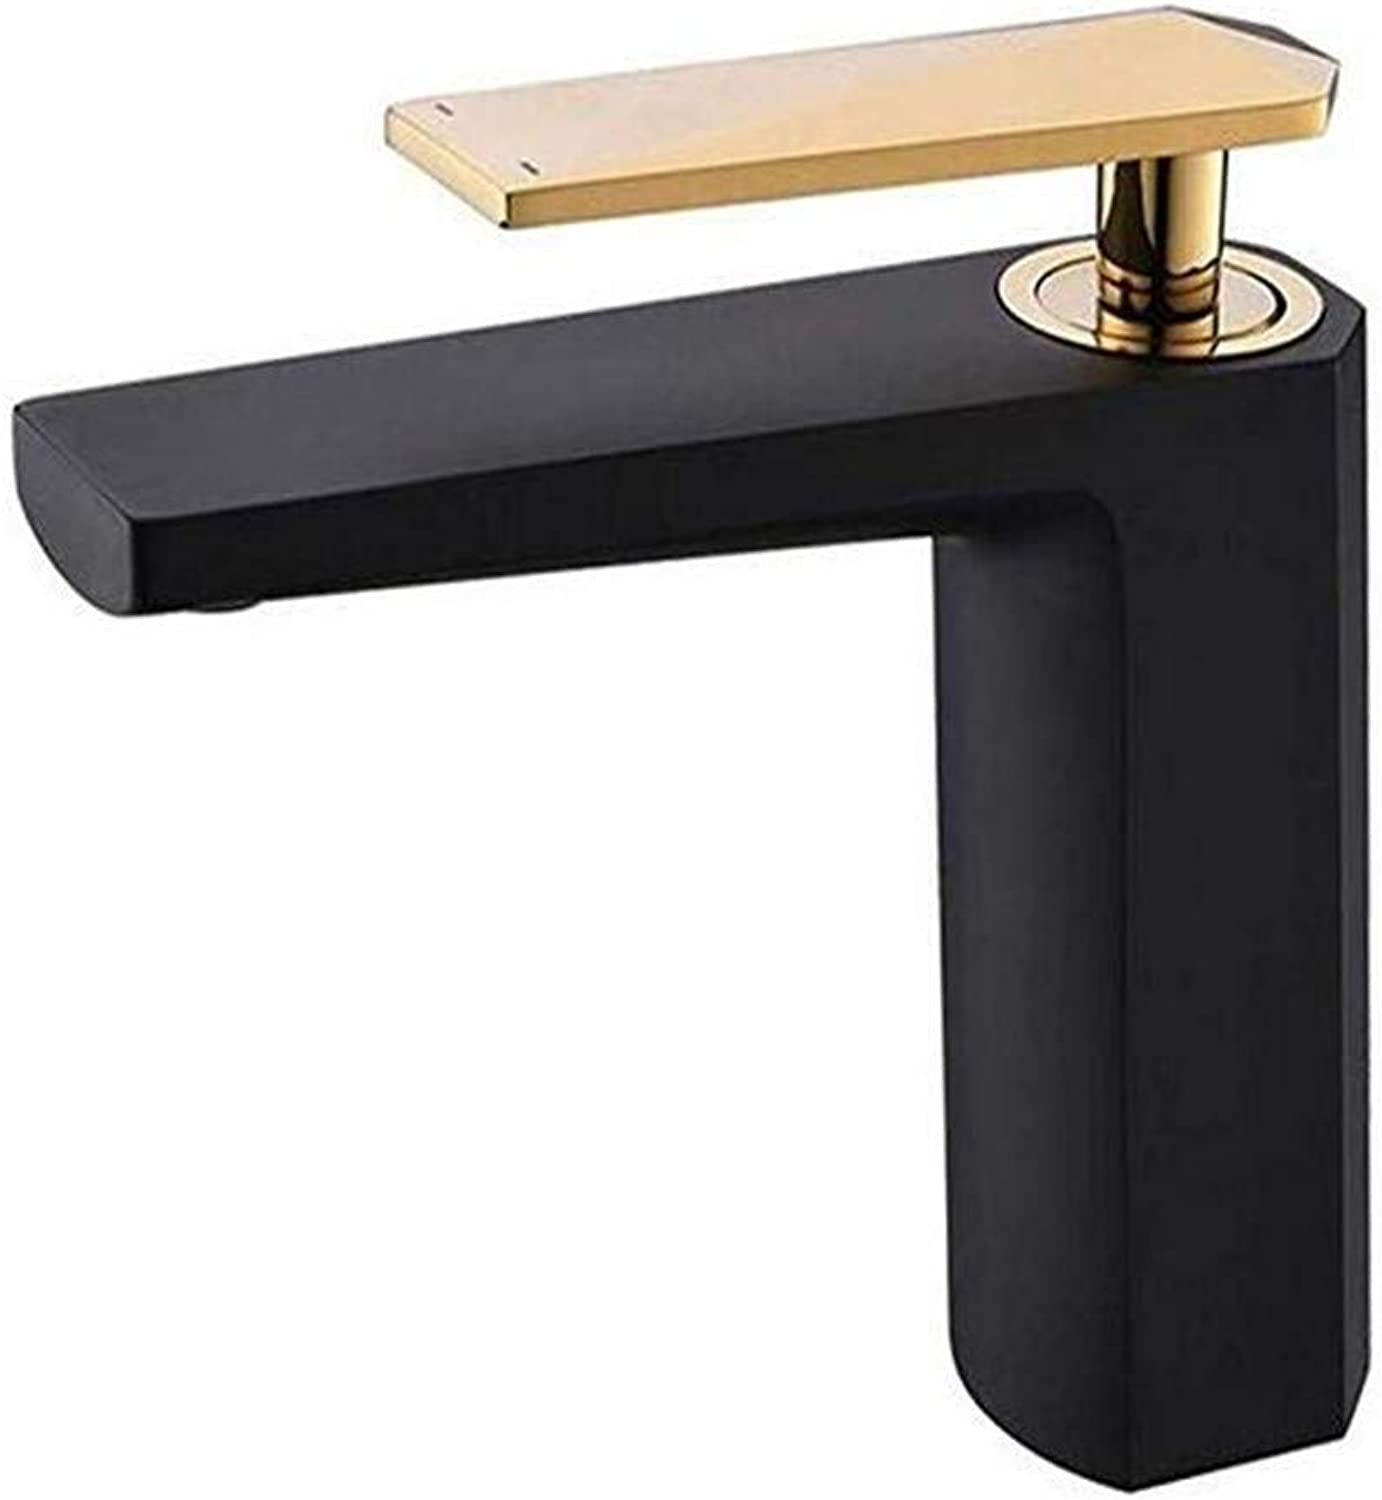 Sink Faucet Bathroom Sink Faucet Bathroom Cabinet Hot and Cold Sink Faucet Black Frosted Single Hole Sink Faucet Copper